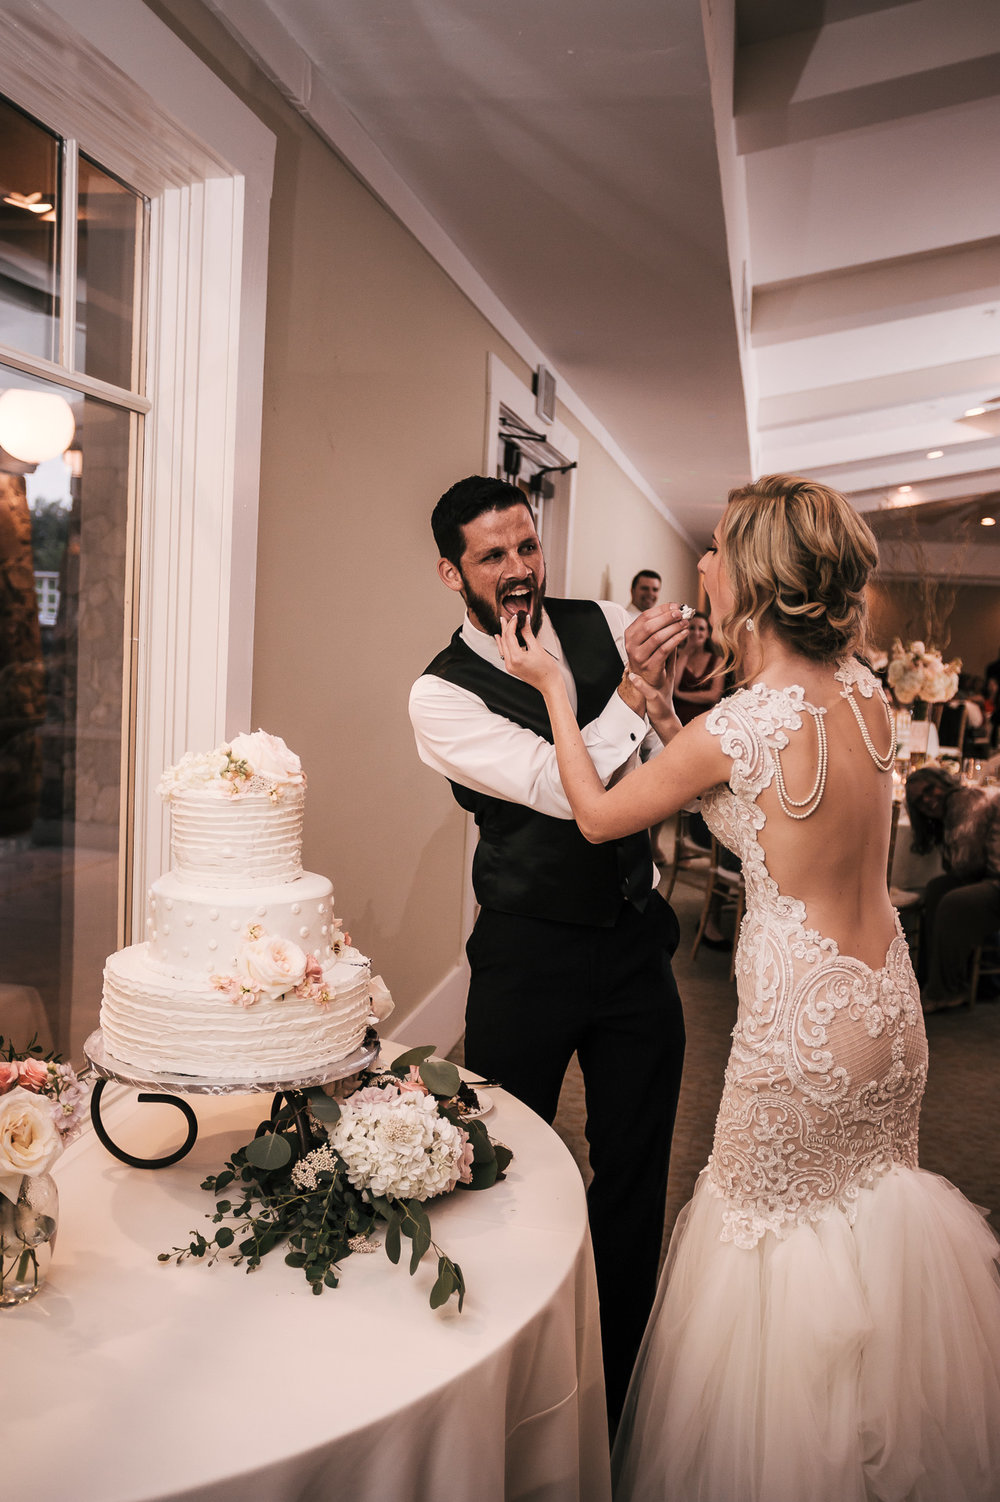 cake cutting at the Twin Oaks Golf Course in San Marcos, San Diegos premier wedding venue